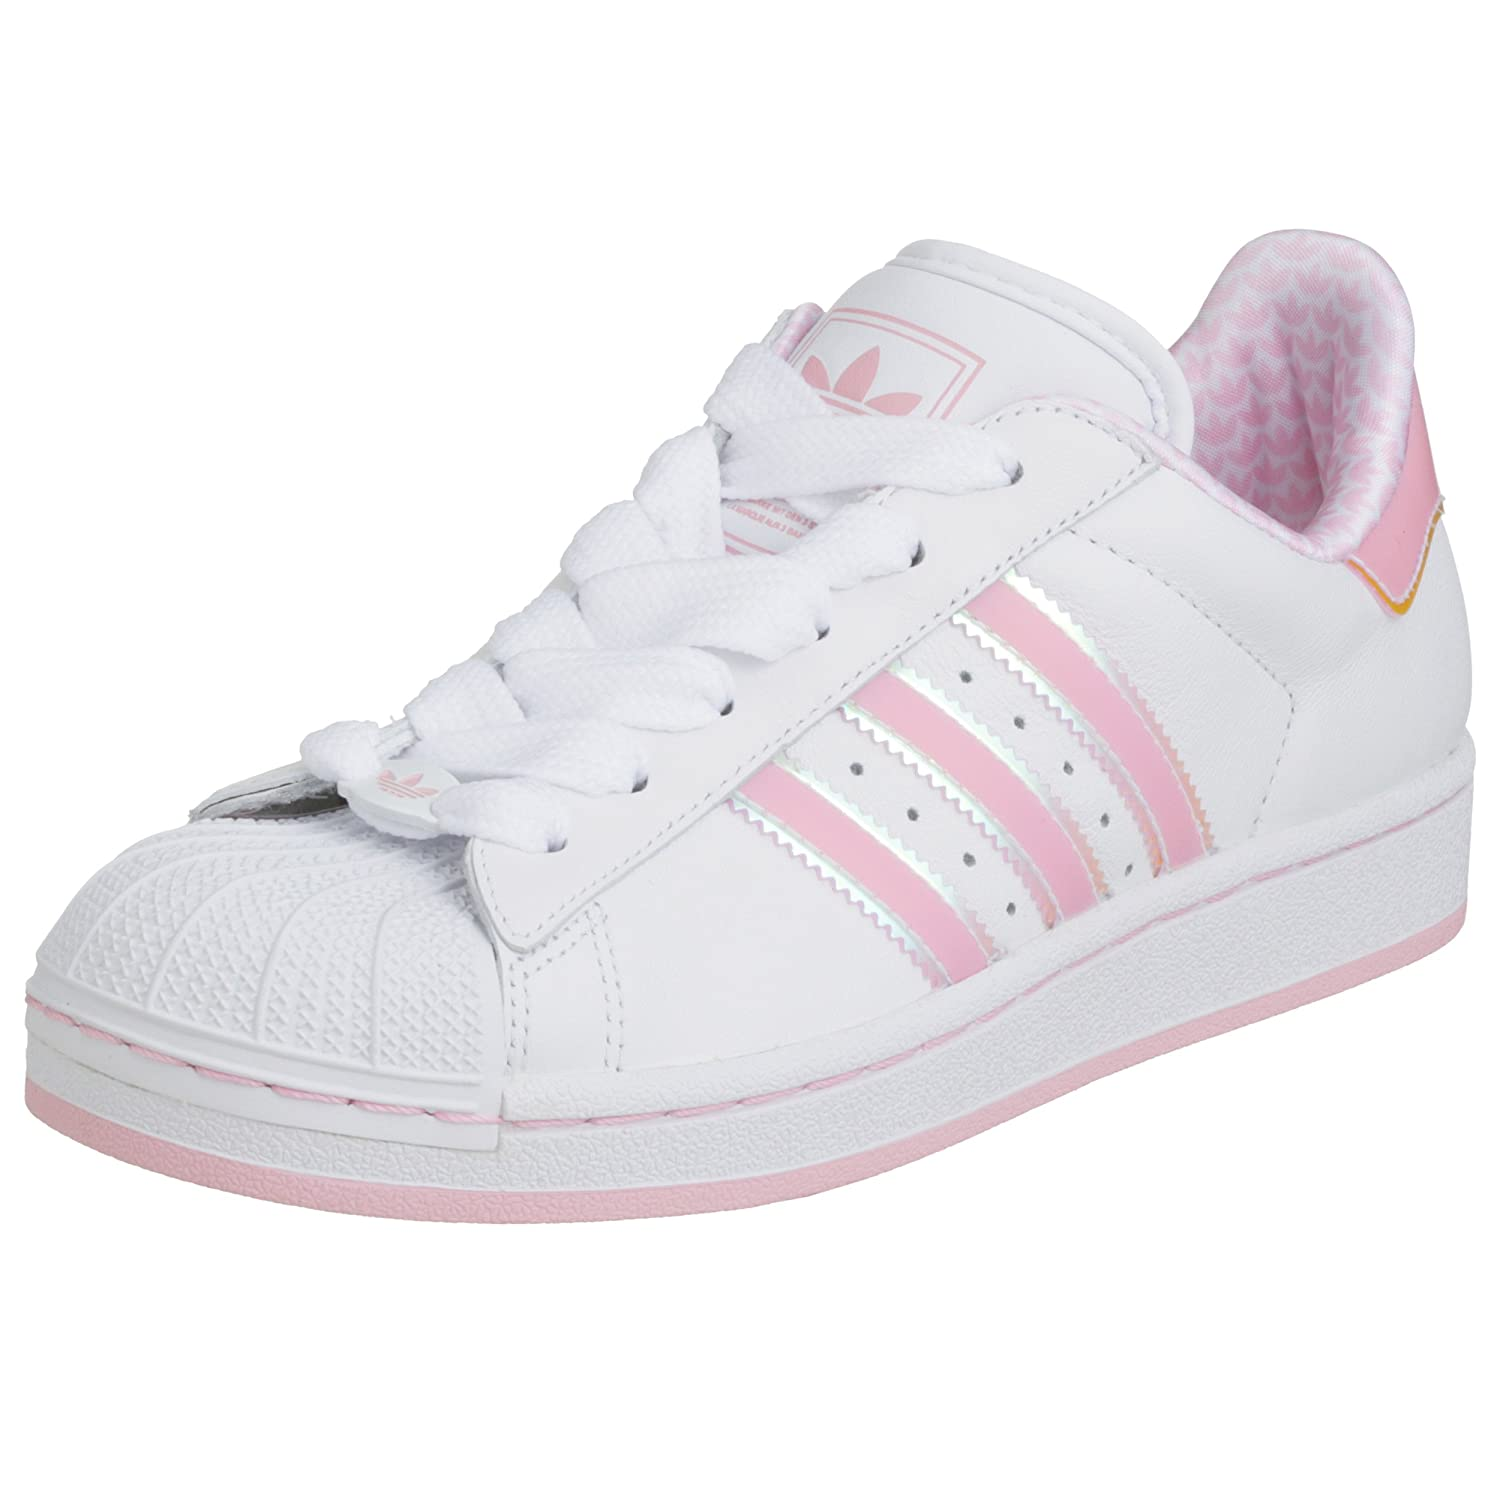 Adidas Originals Superstar 2 White/Pink Womens